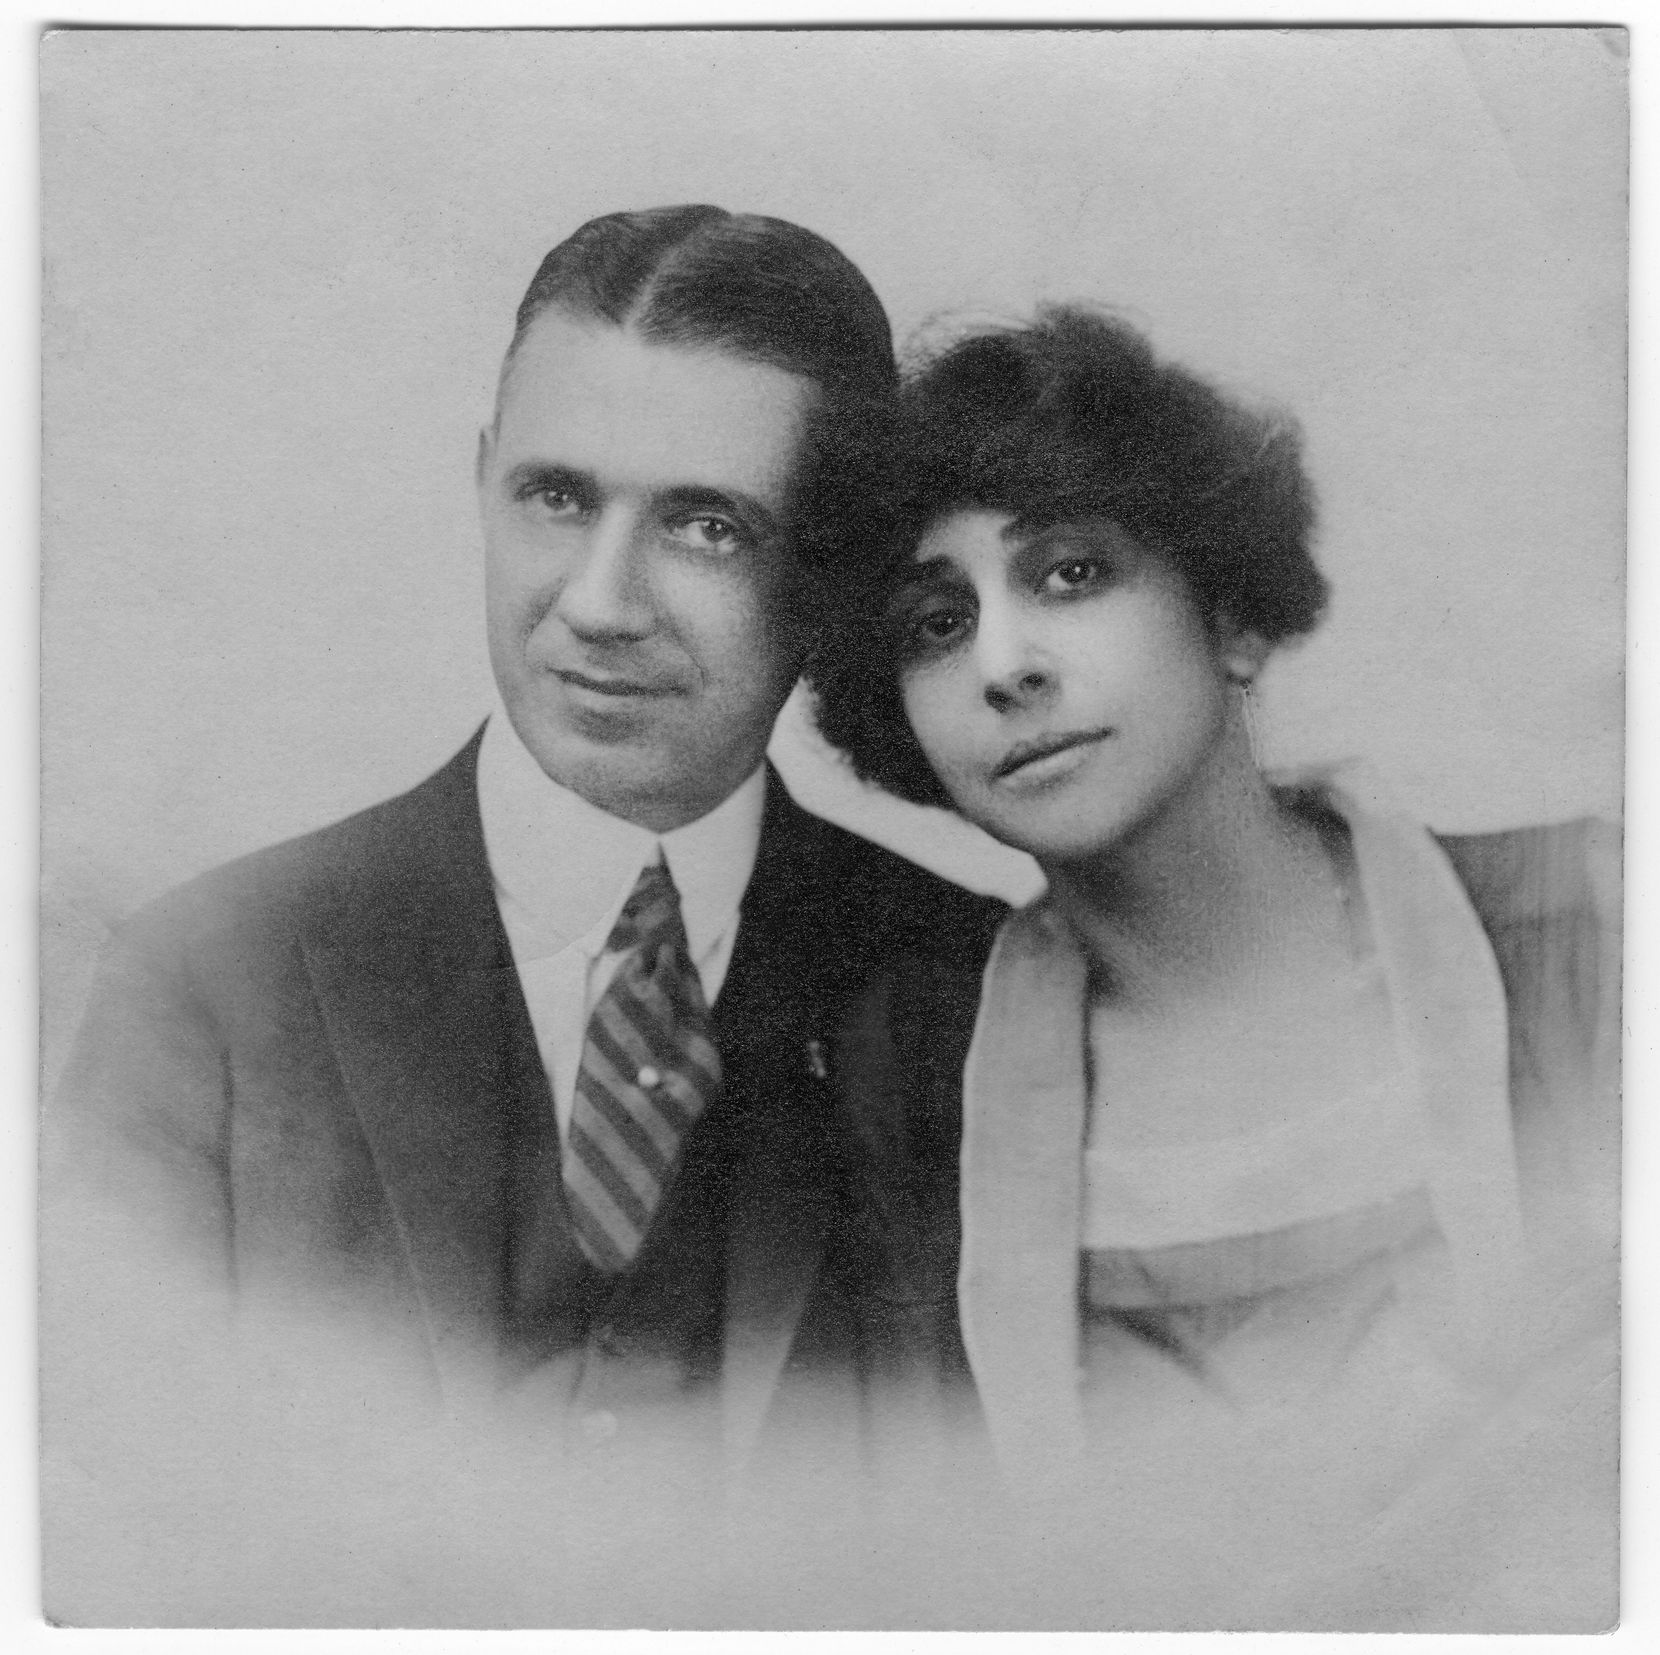 Al and Carrie Neiman, 1905